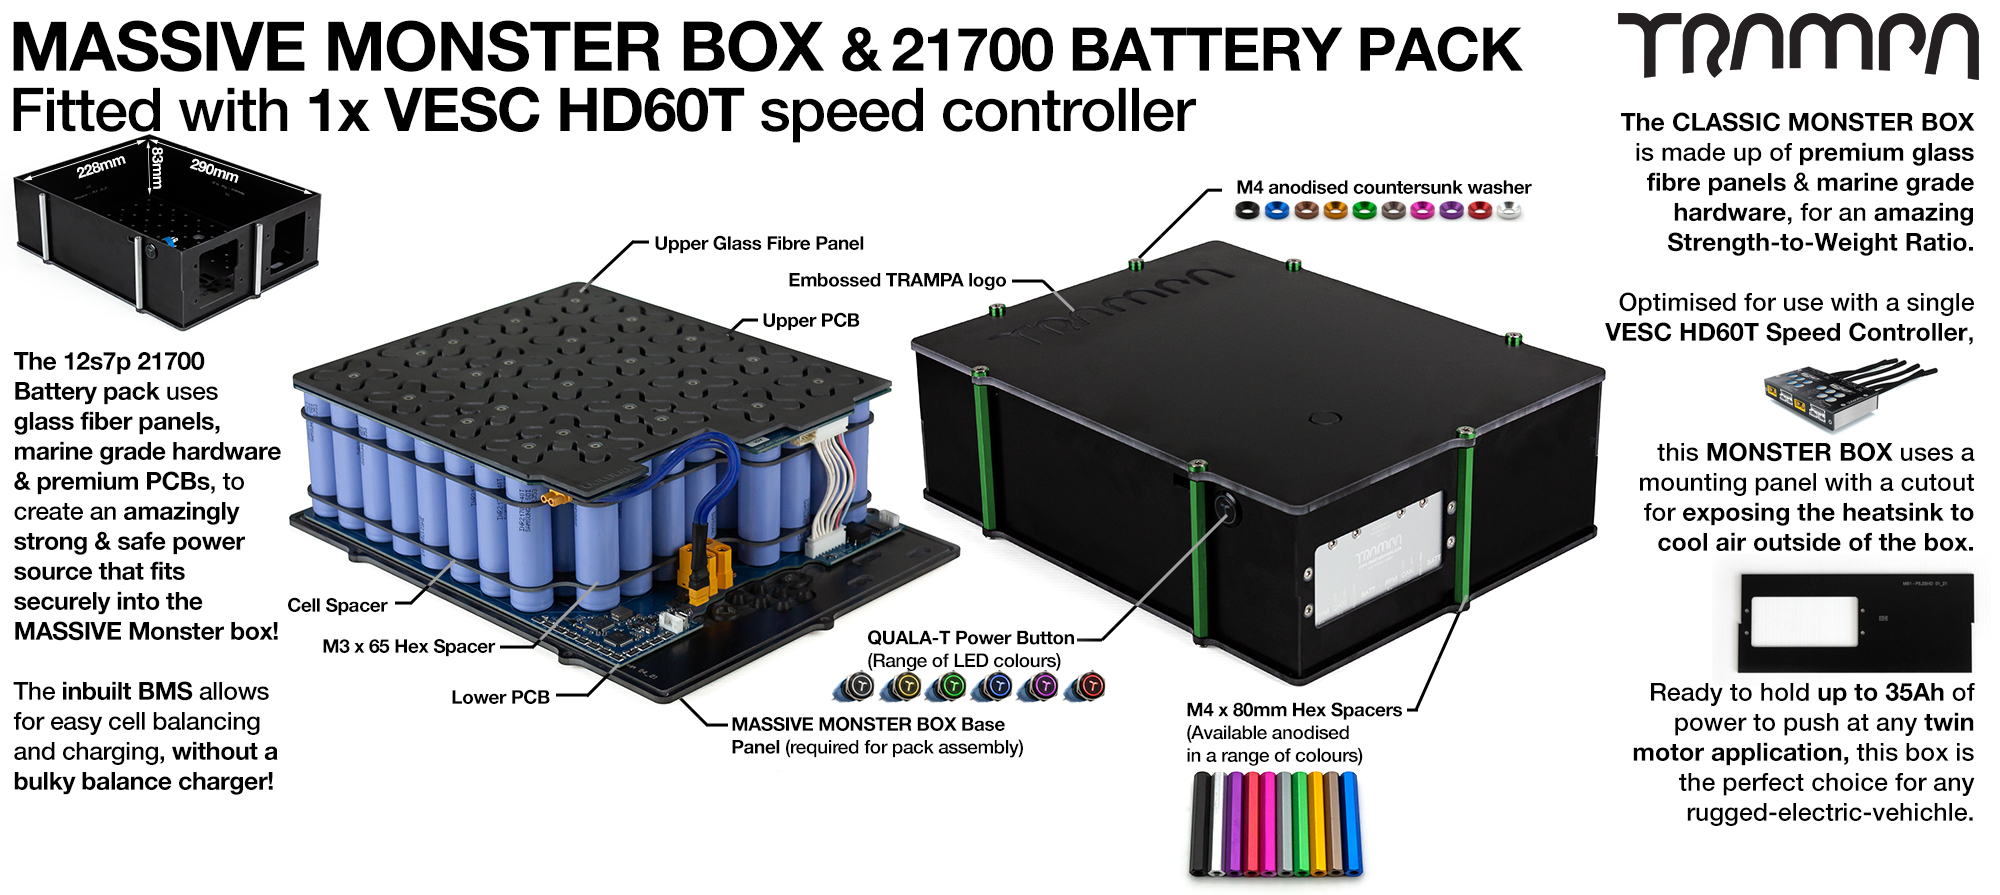 21700 MASSIVE MONSTER Box with 21700 PCB Pack with 1x VESC HD-60Twin & 84x 21700 cells 12s7p = 35Ah - Specifically made to work in conjunction with TRAMPA's Electric Decks but can be adapted to fit anything - UK Customers only